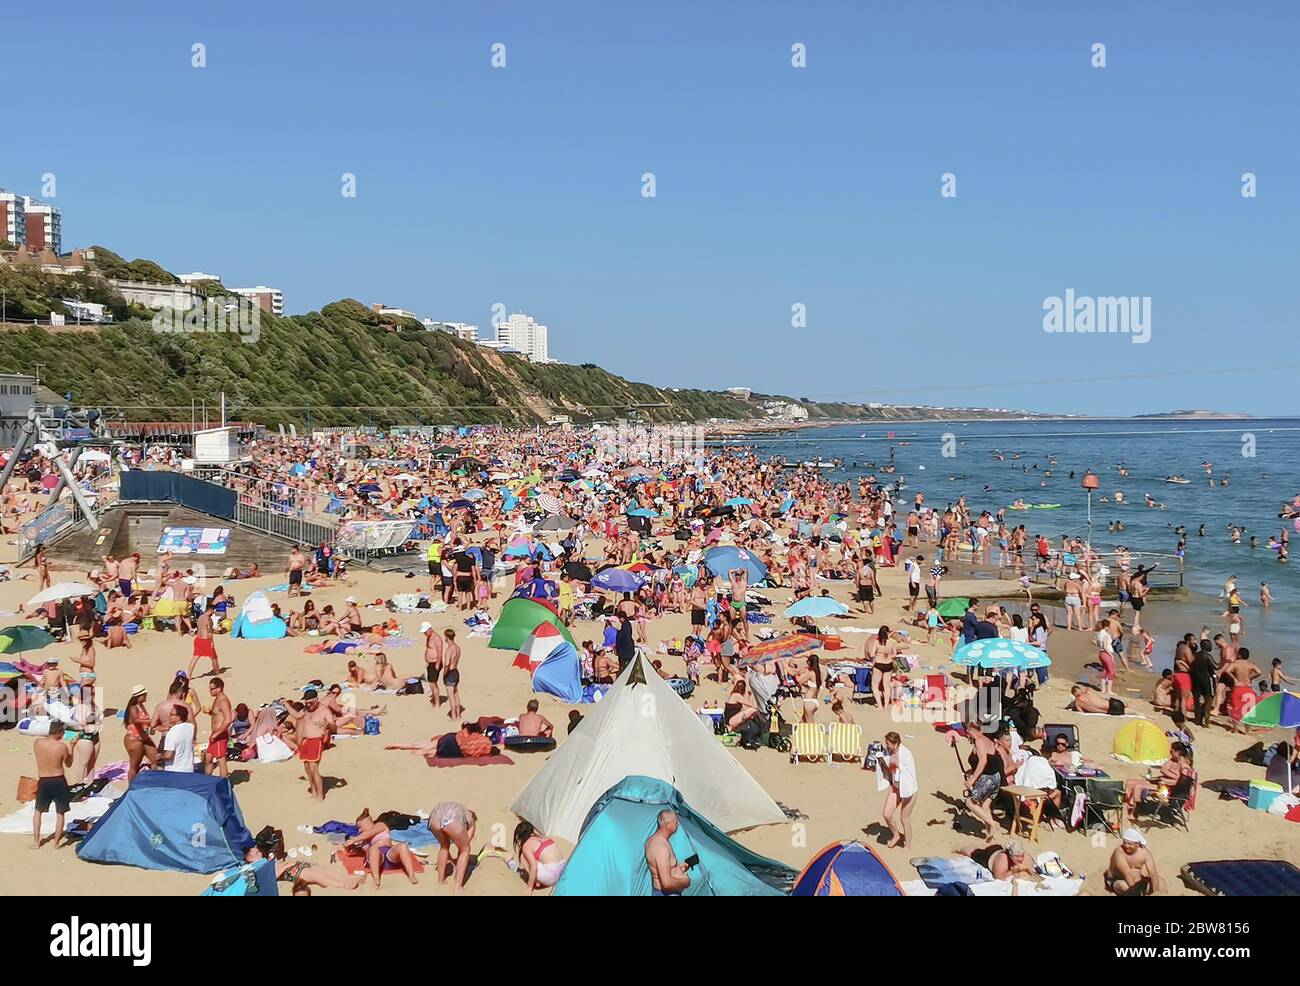 Bournemouth, UK. 30th May 2020. Bournemouth, UK.  Thousands of people descend on Bournemouth beach, many ignoring social distancing rules and crowding the beach and sea. Credit: Thomas Faull/Alamy Live News Stock Photo